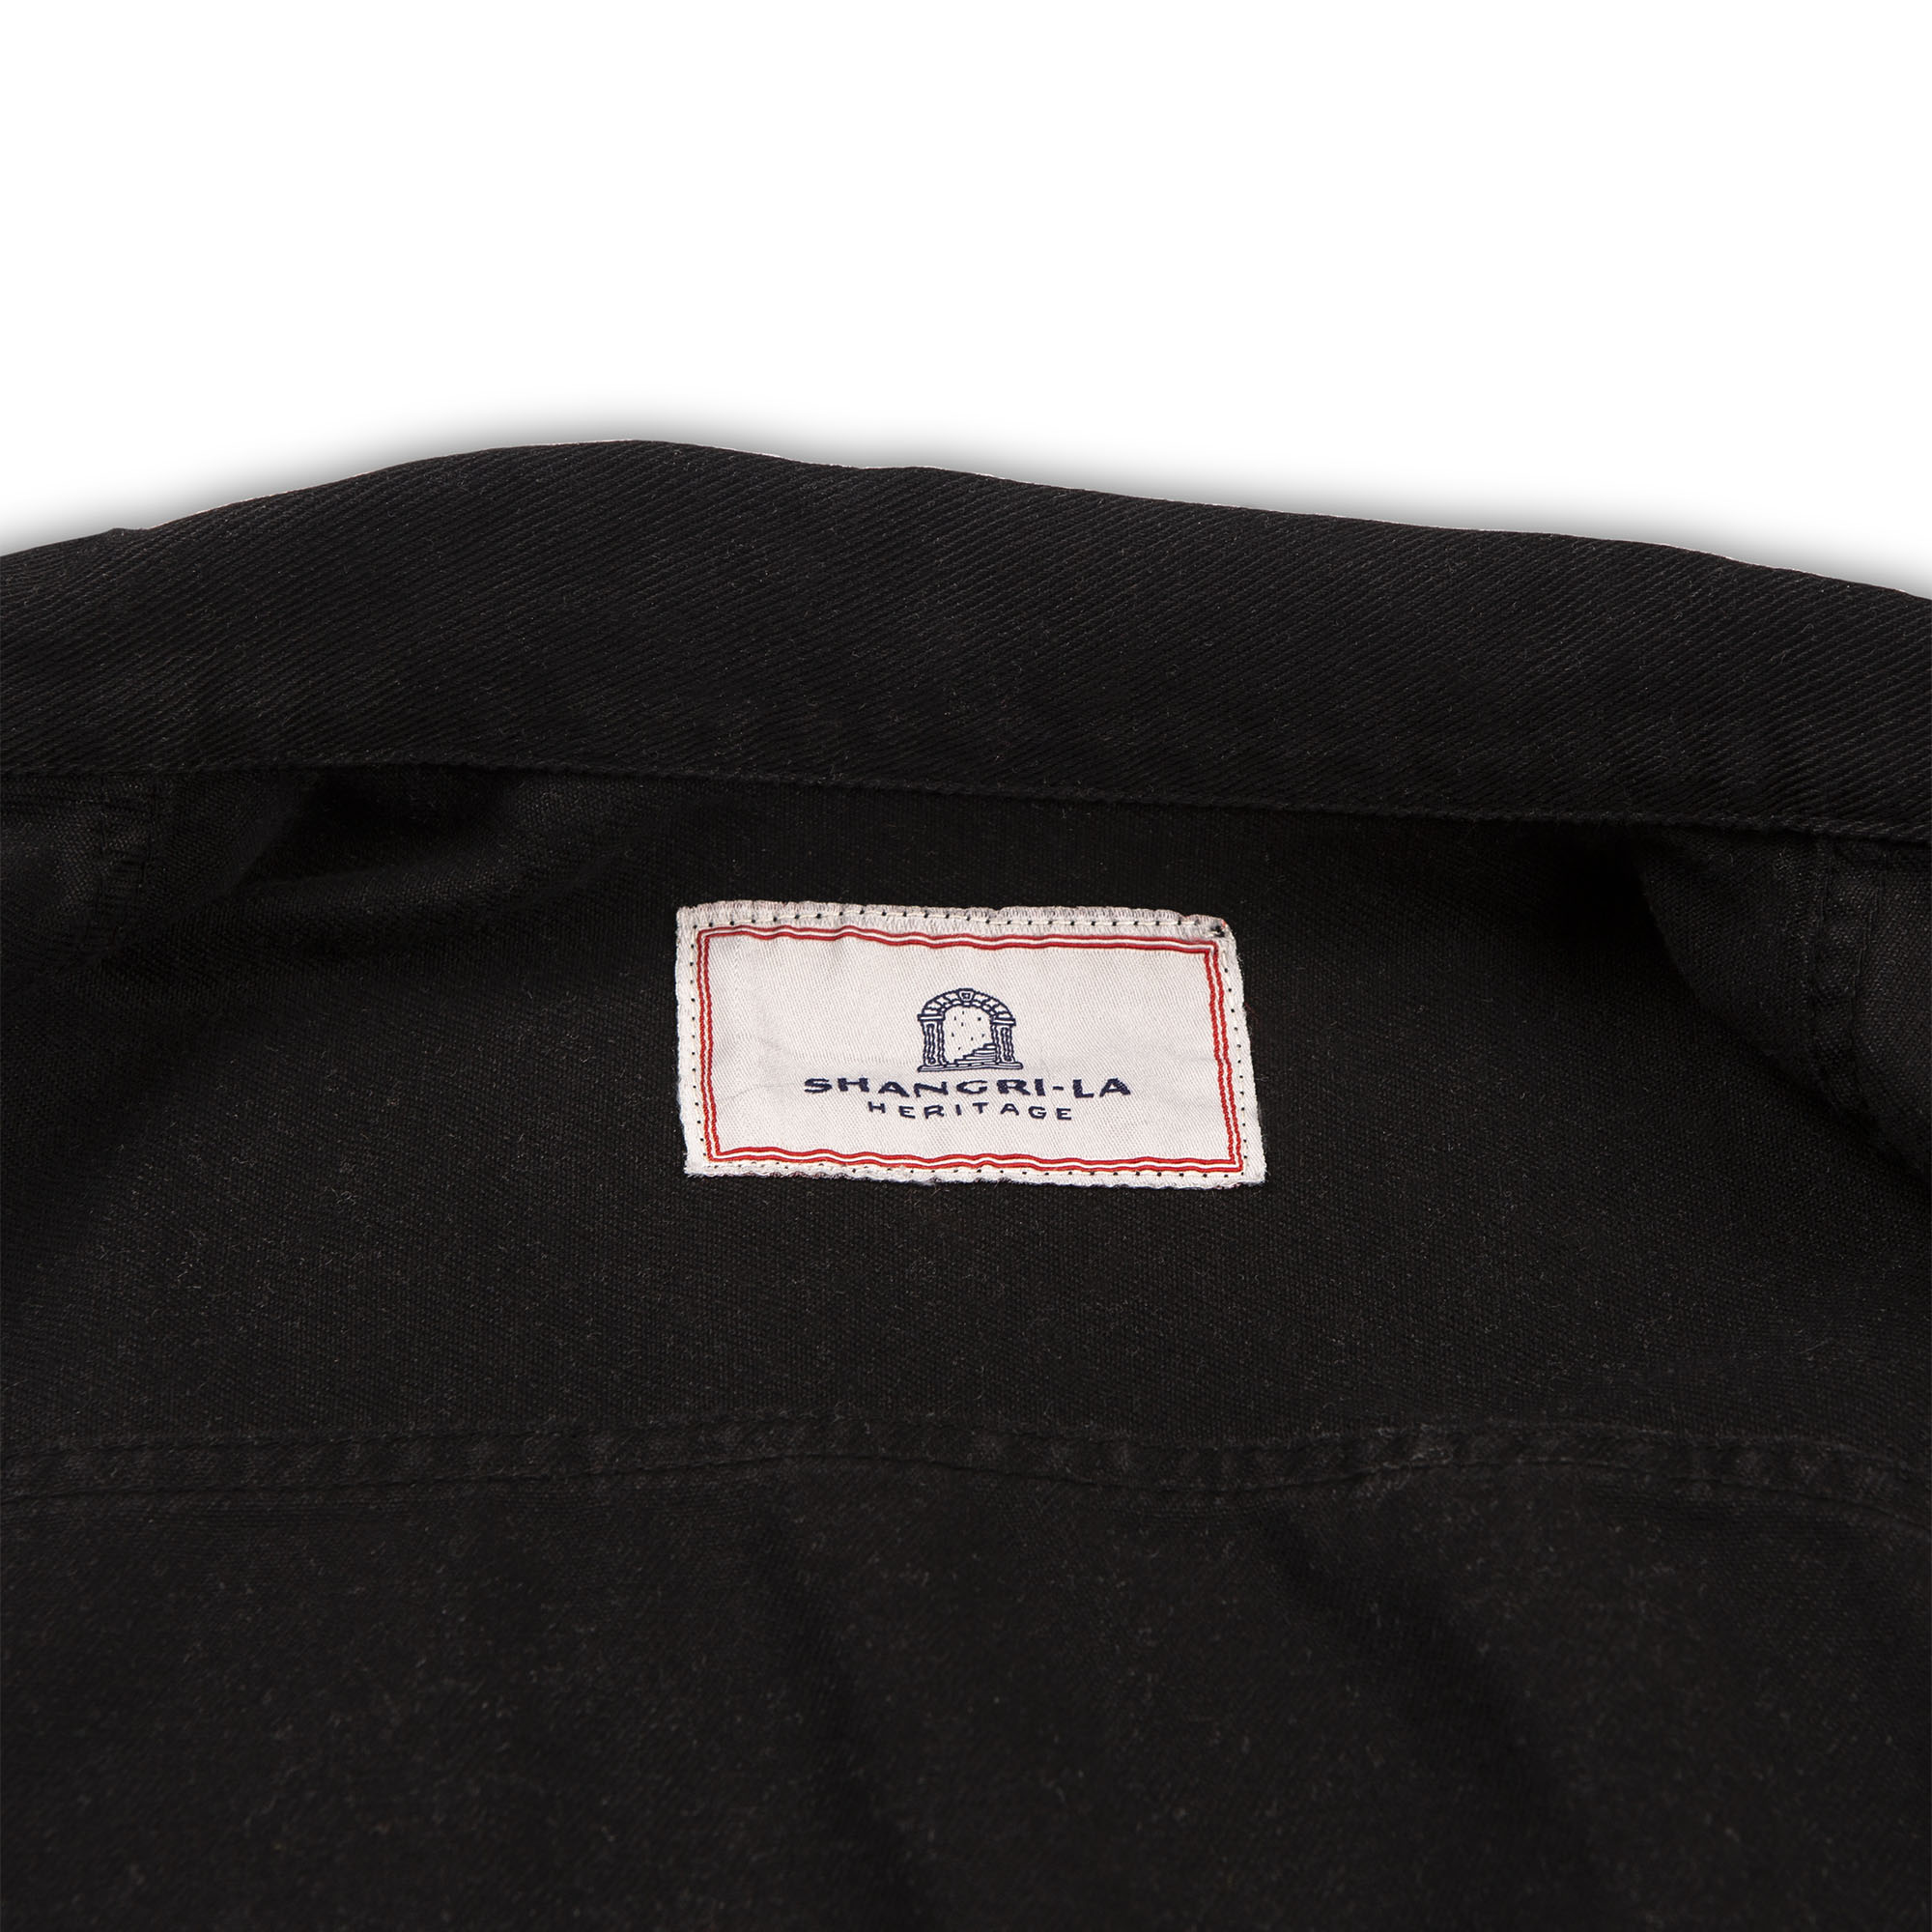 shangri-la-heritage-new-single-rider-black-canvas-jacket-still-life-label